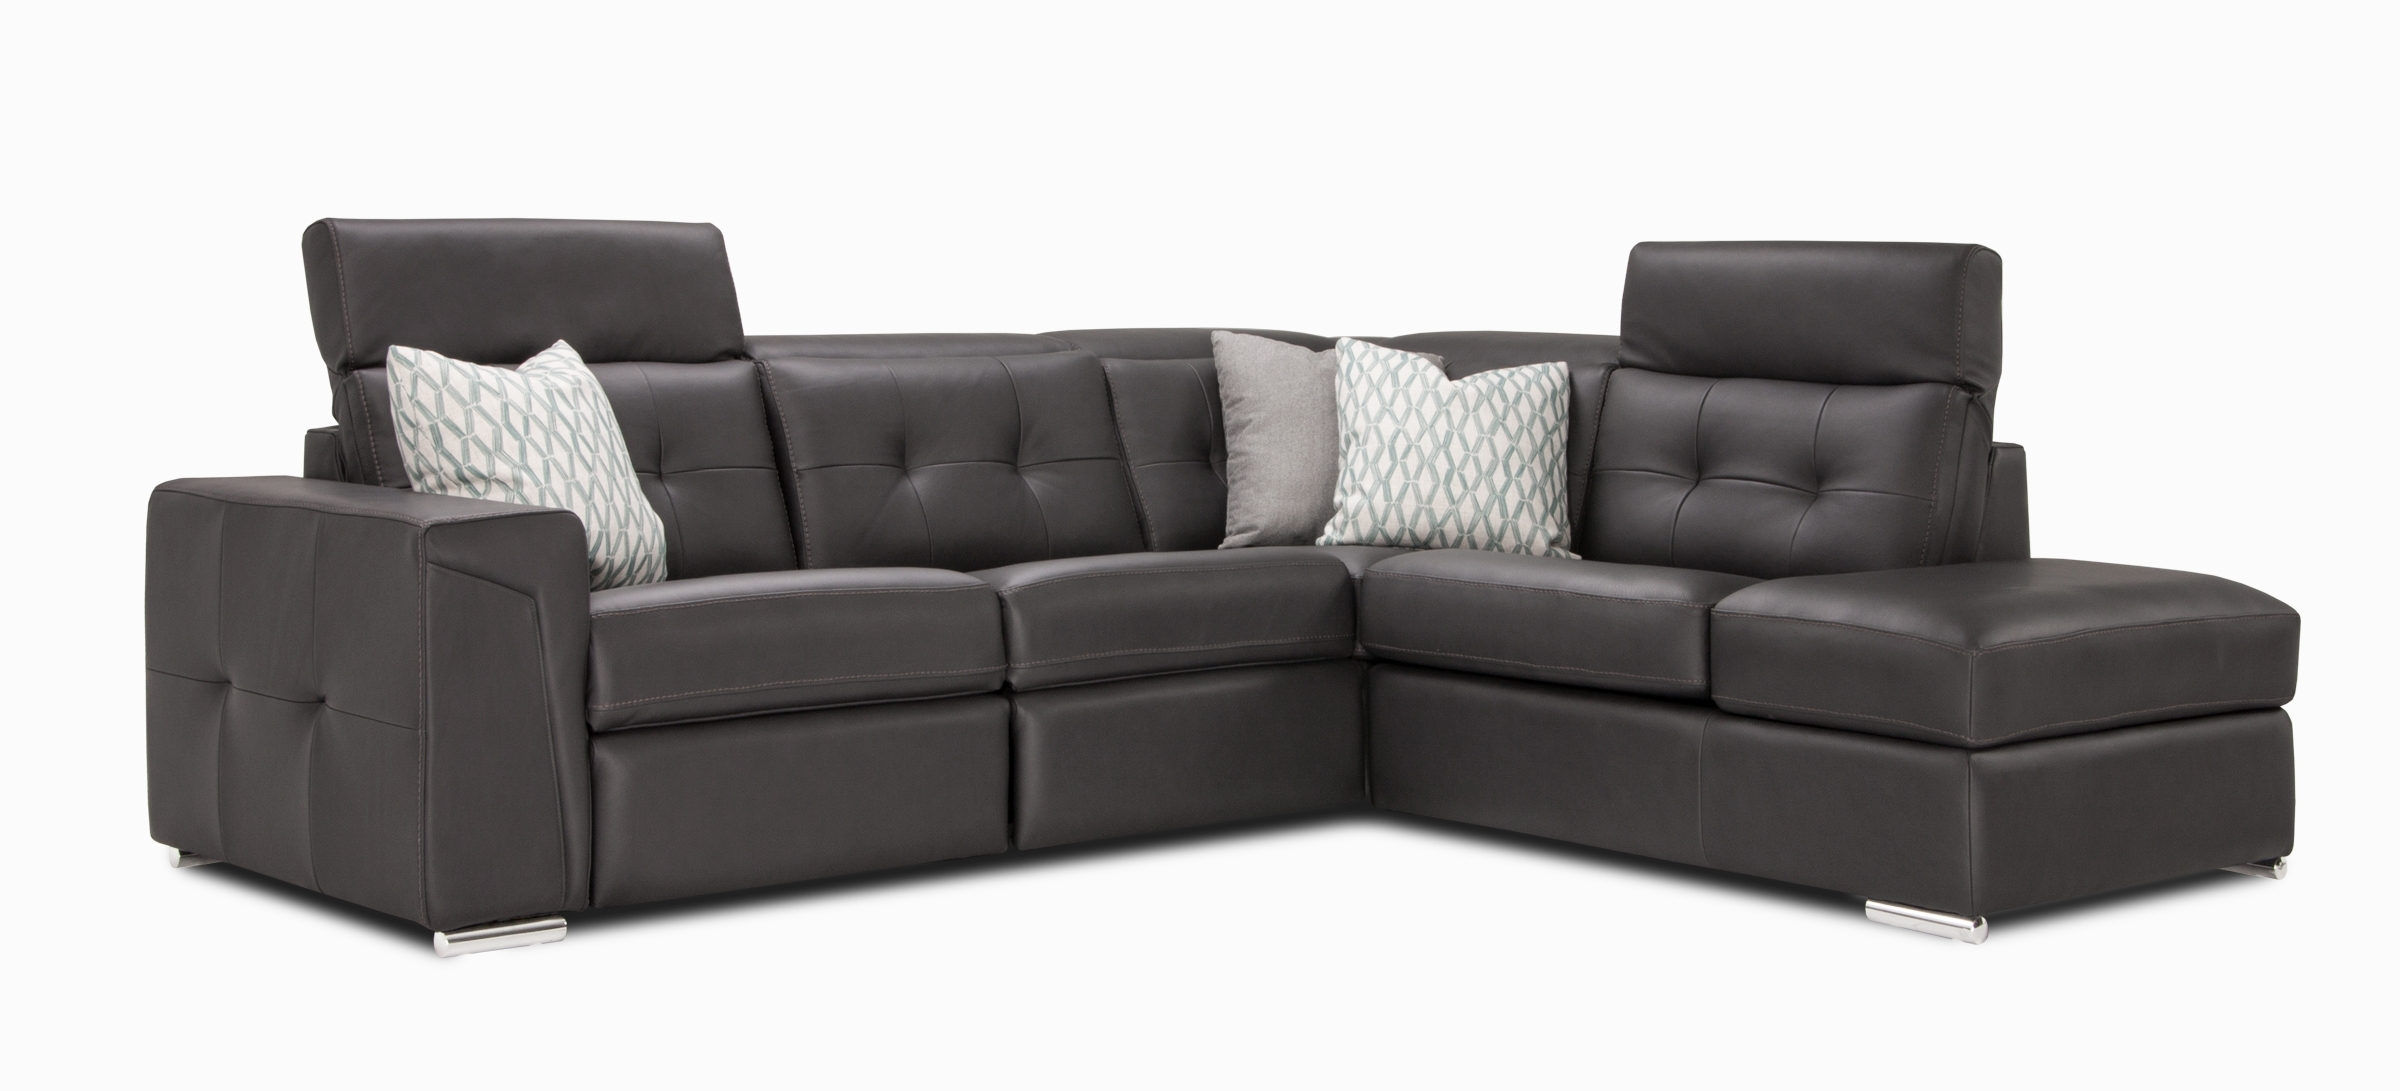 Best And Newest Sydney Sectional Sofas Inside Sectional Sydney – Contemporary Style – Optima Collection (View 3 of 20)